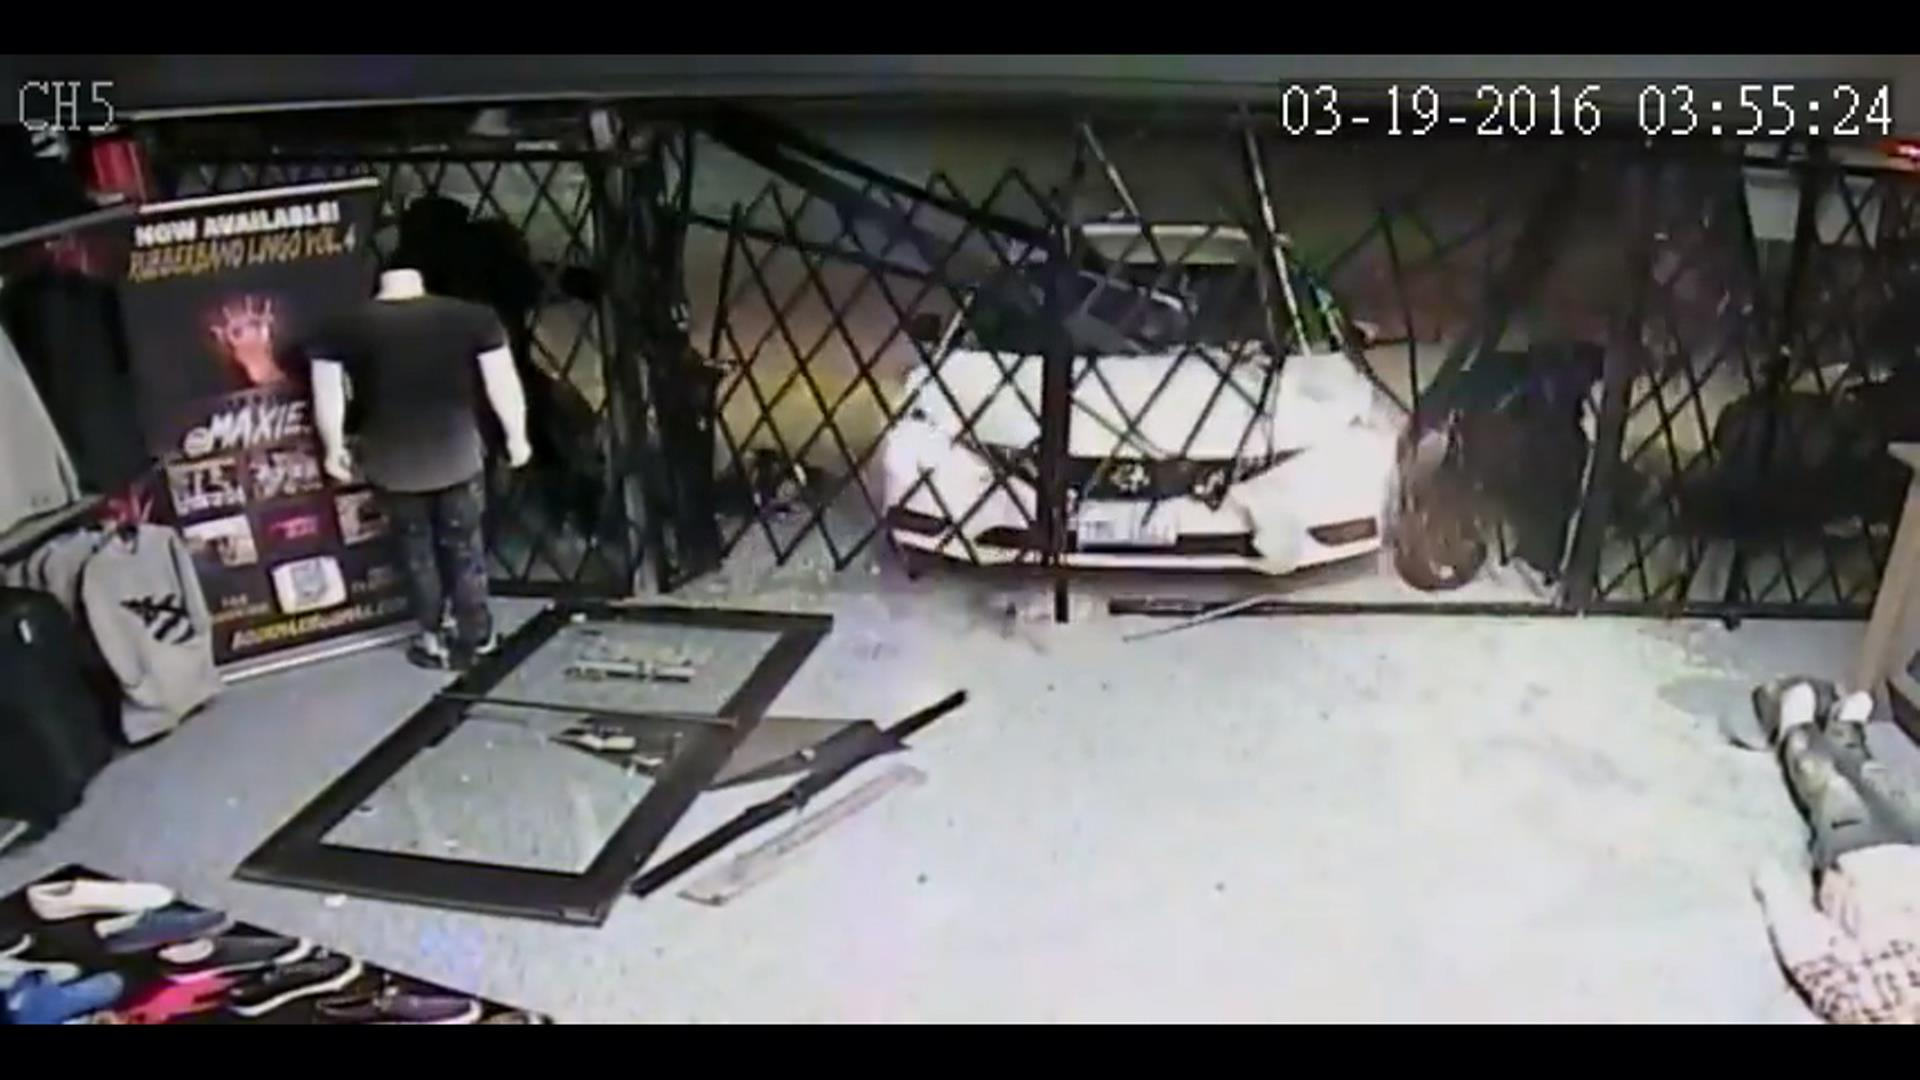 Surveillance Video Captures 'Smash and Grab'